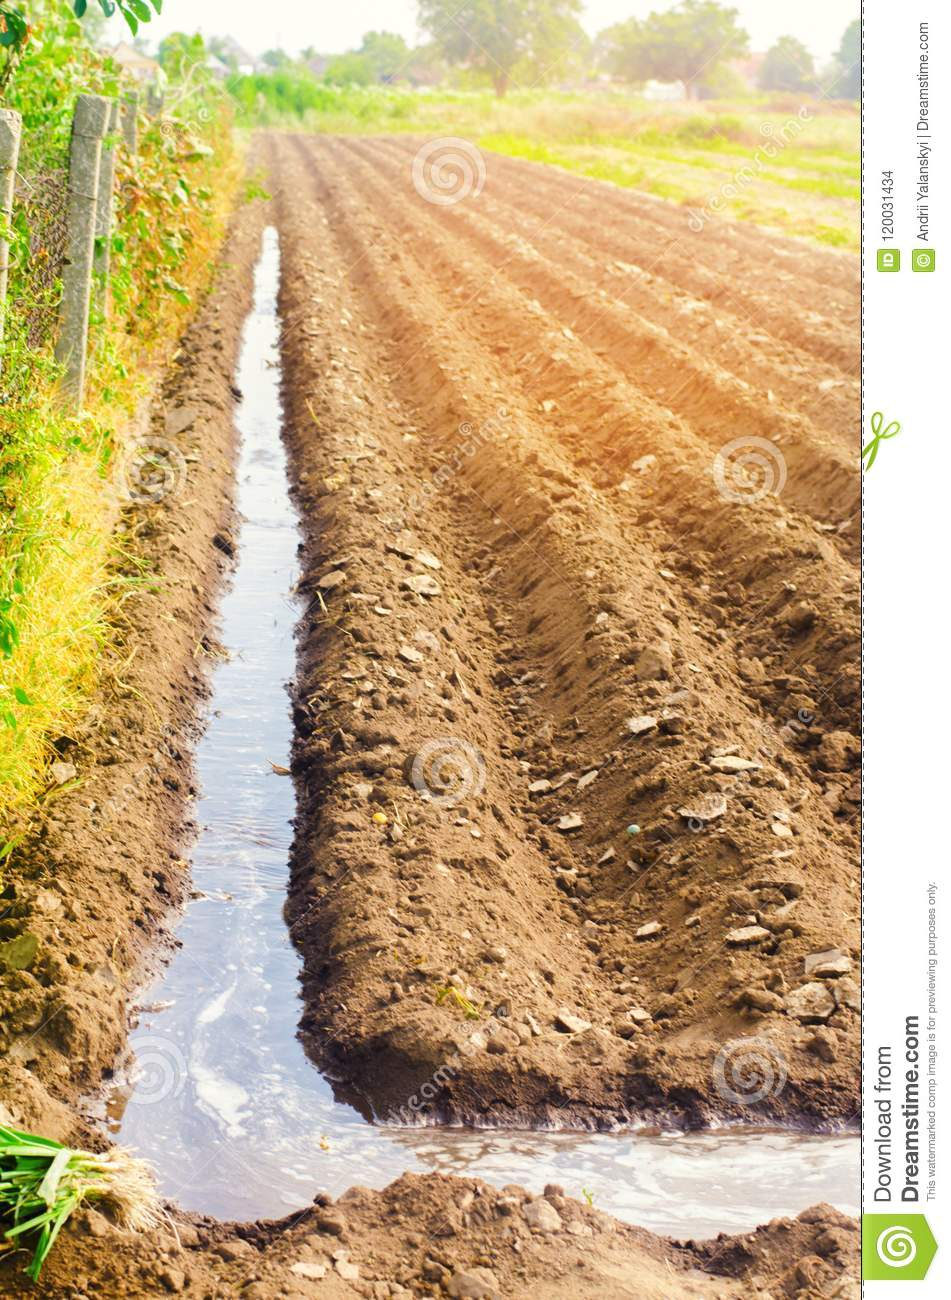 Watering Of Agricultural Crops, Countryside, Irrigation